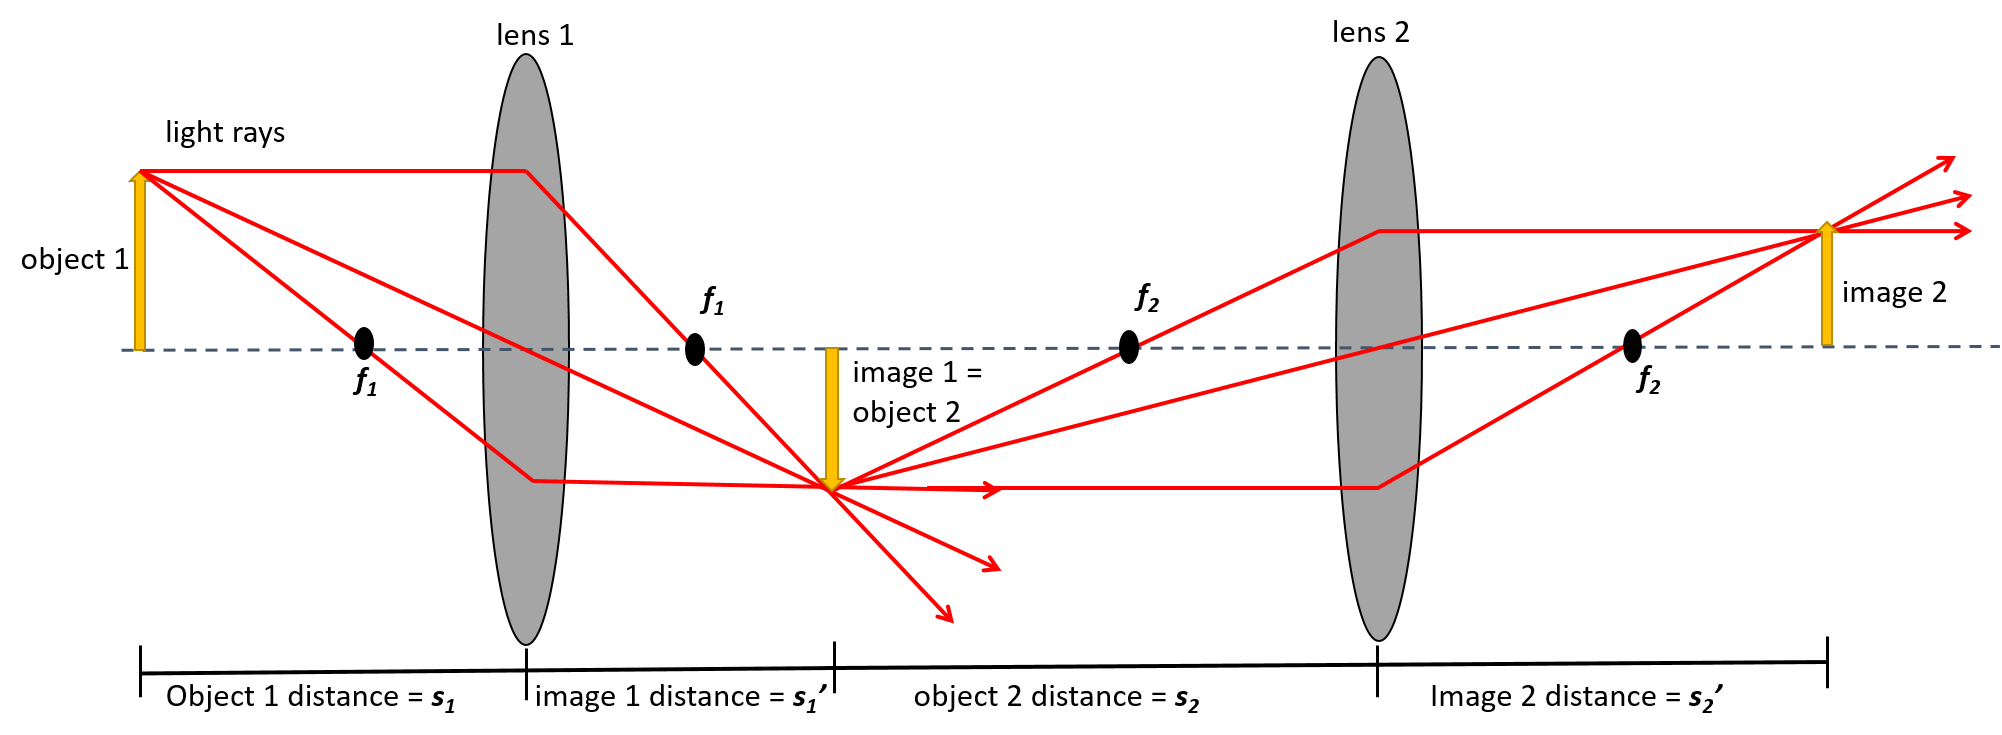 Lens drawing converging. Slide projector physics figure